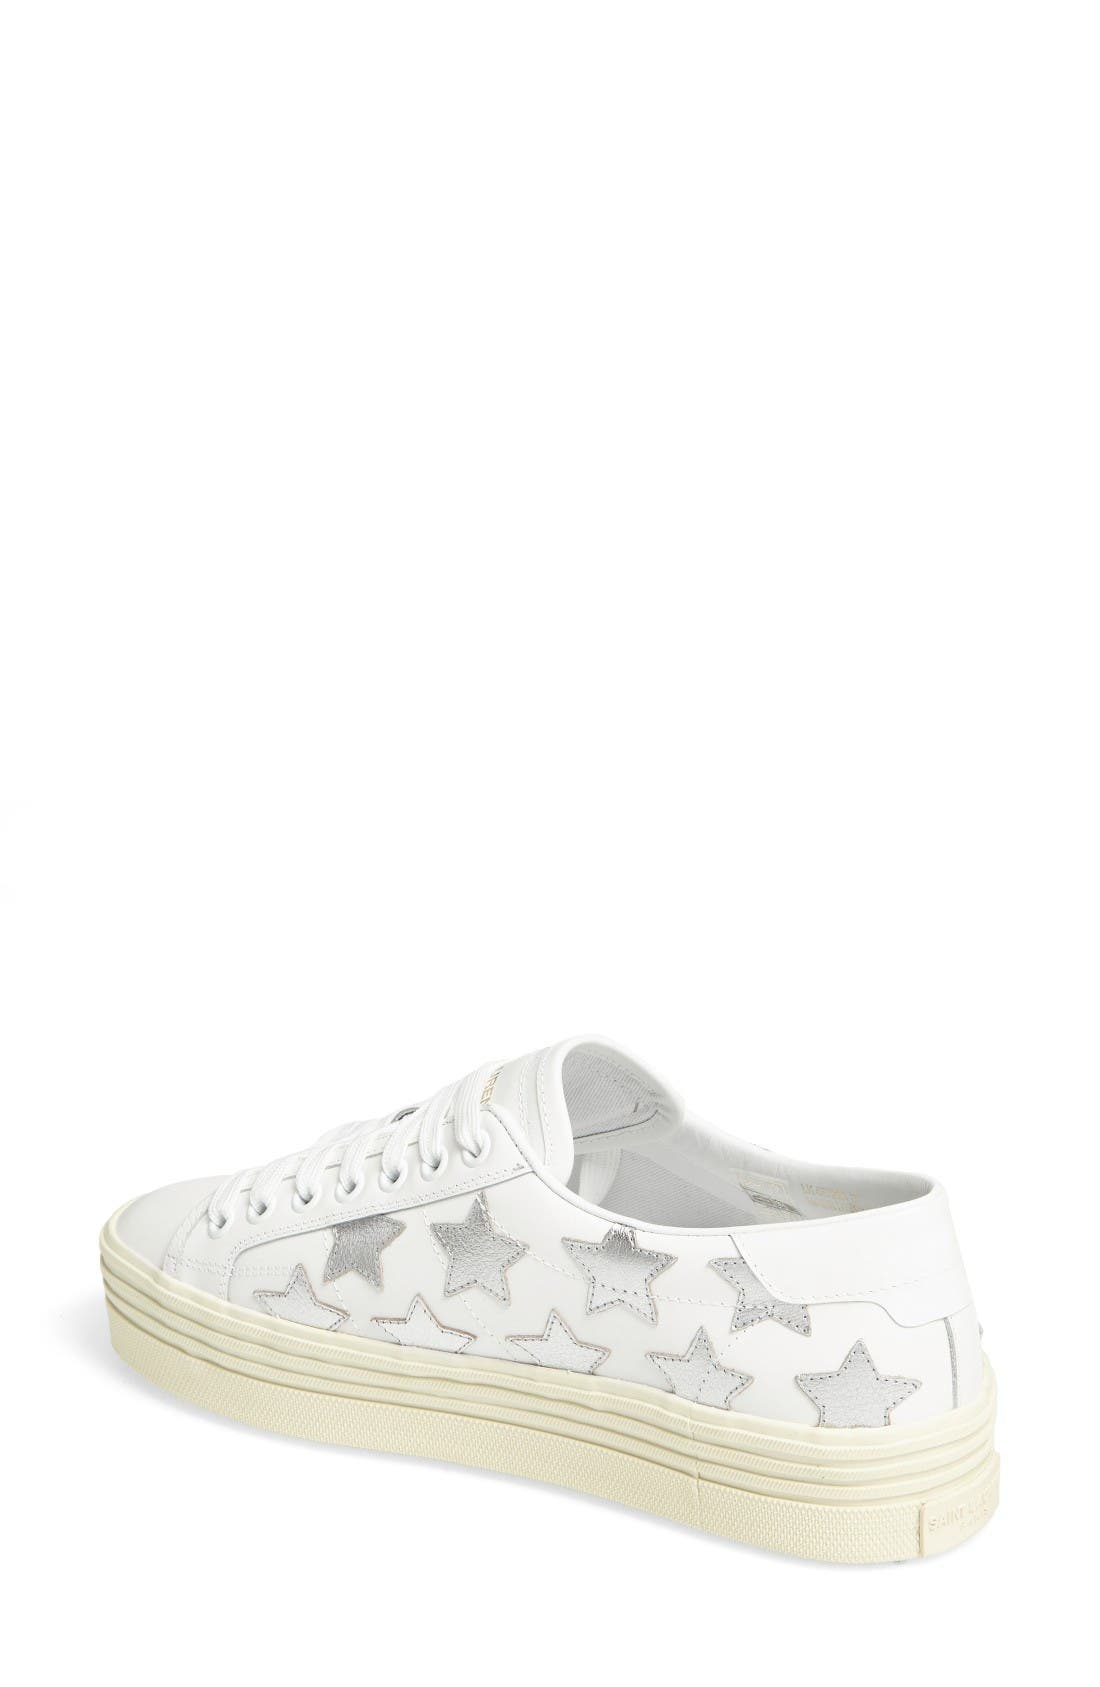 Double Court Classic Sneaker,                             Alternate thumbnail 2, color,                             Ivory